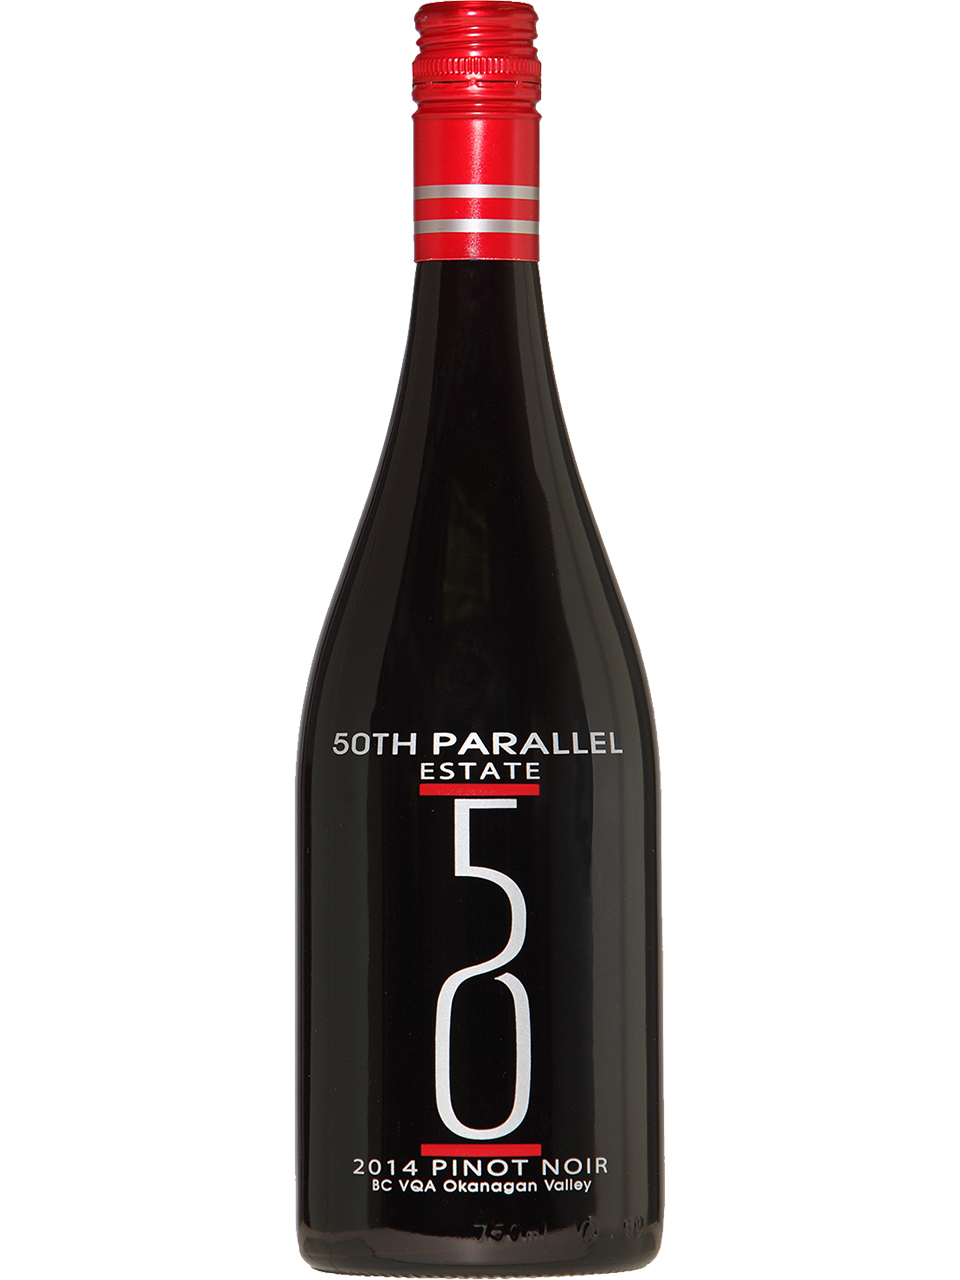 50th Parallel Pinot Noir 2015